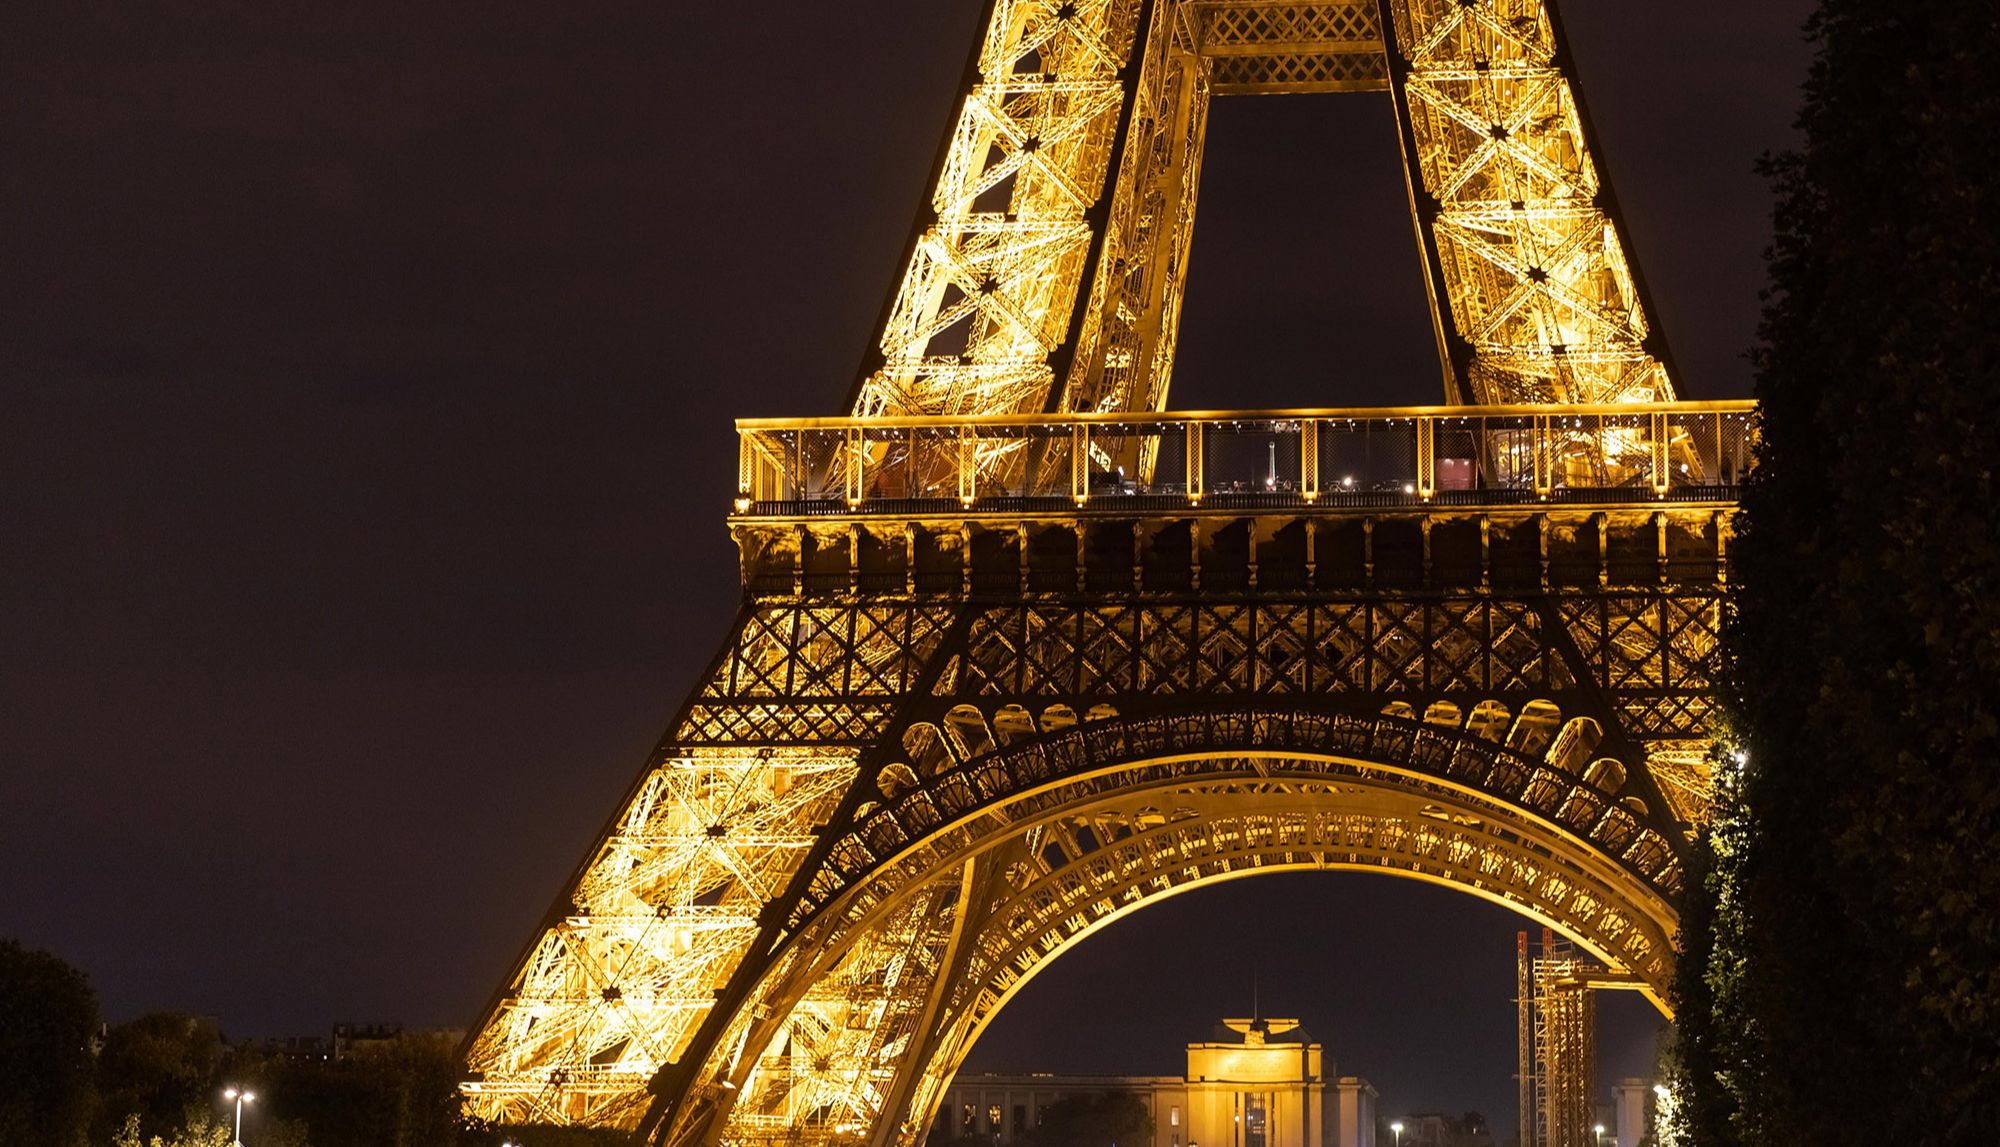 Dinner at the Eiffel Tower with Priority Access, Seine Cruise and Moulin Rouge Show, in a Small Group